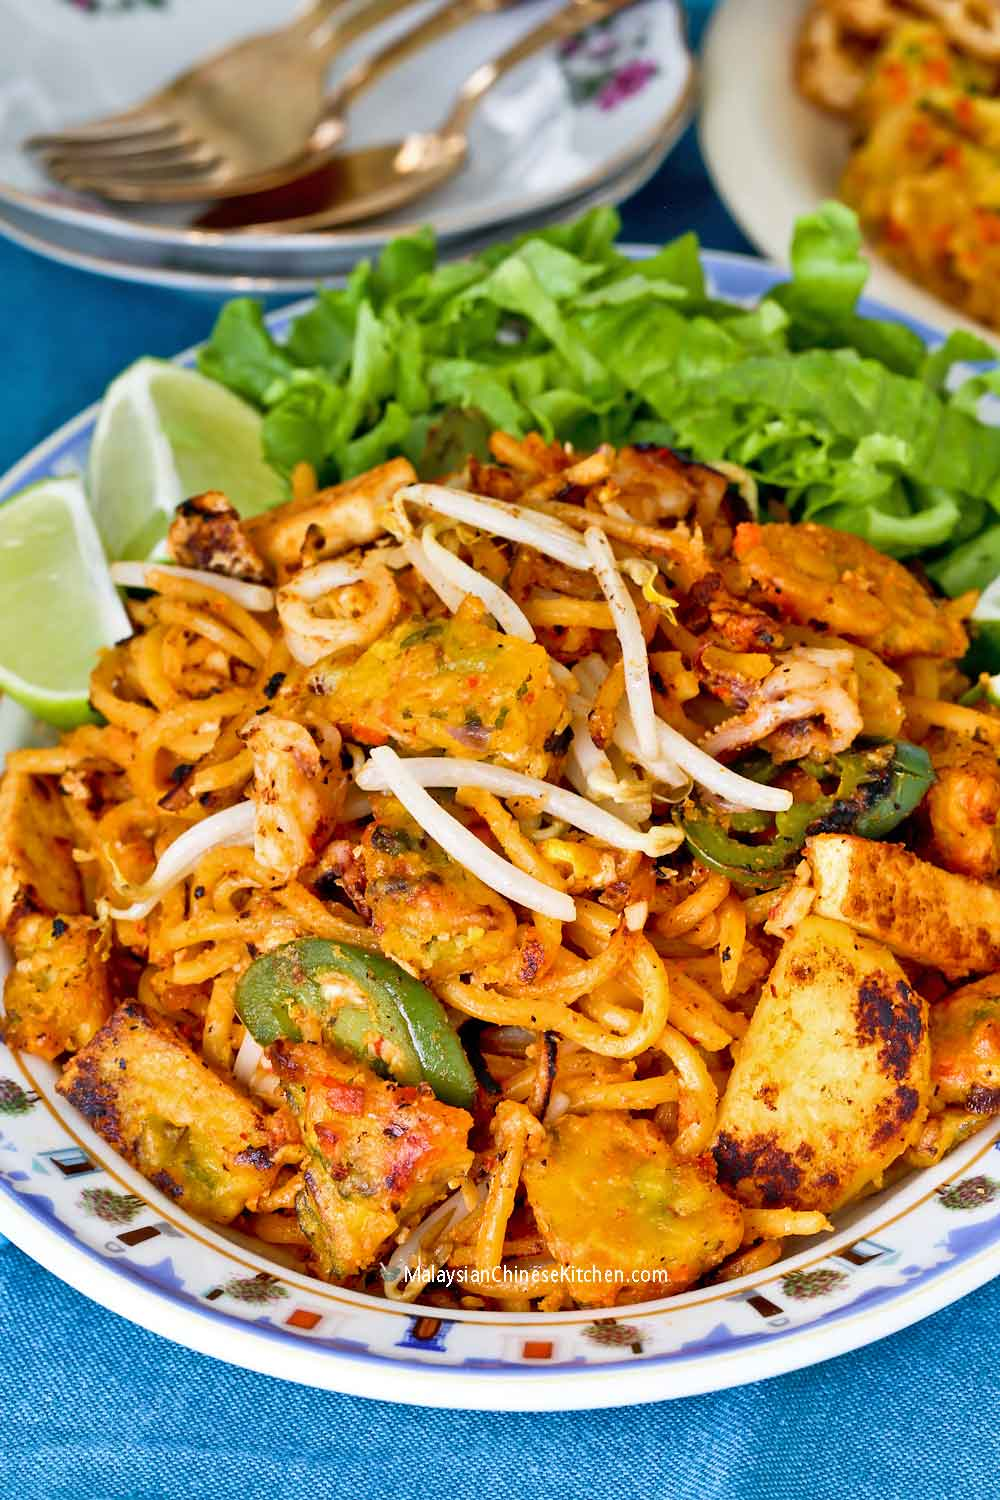 Mee Goreng Mamak with special sauce and fritters.